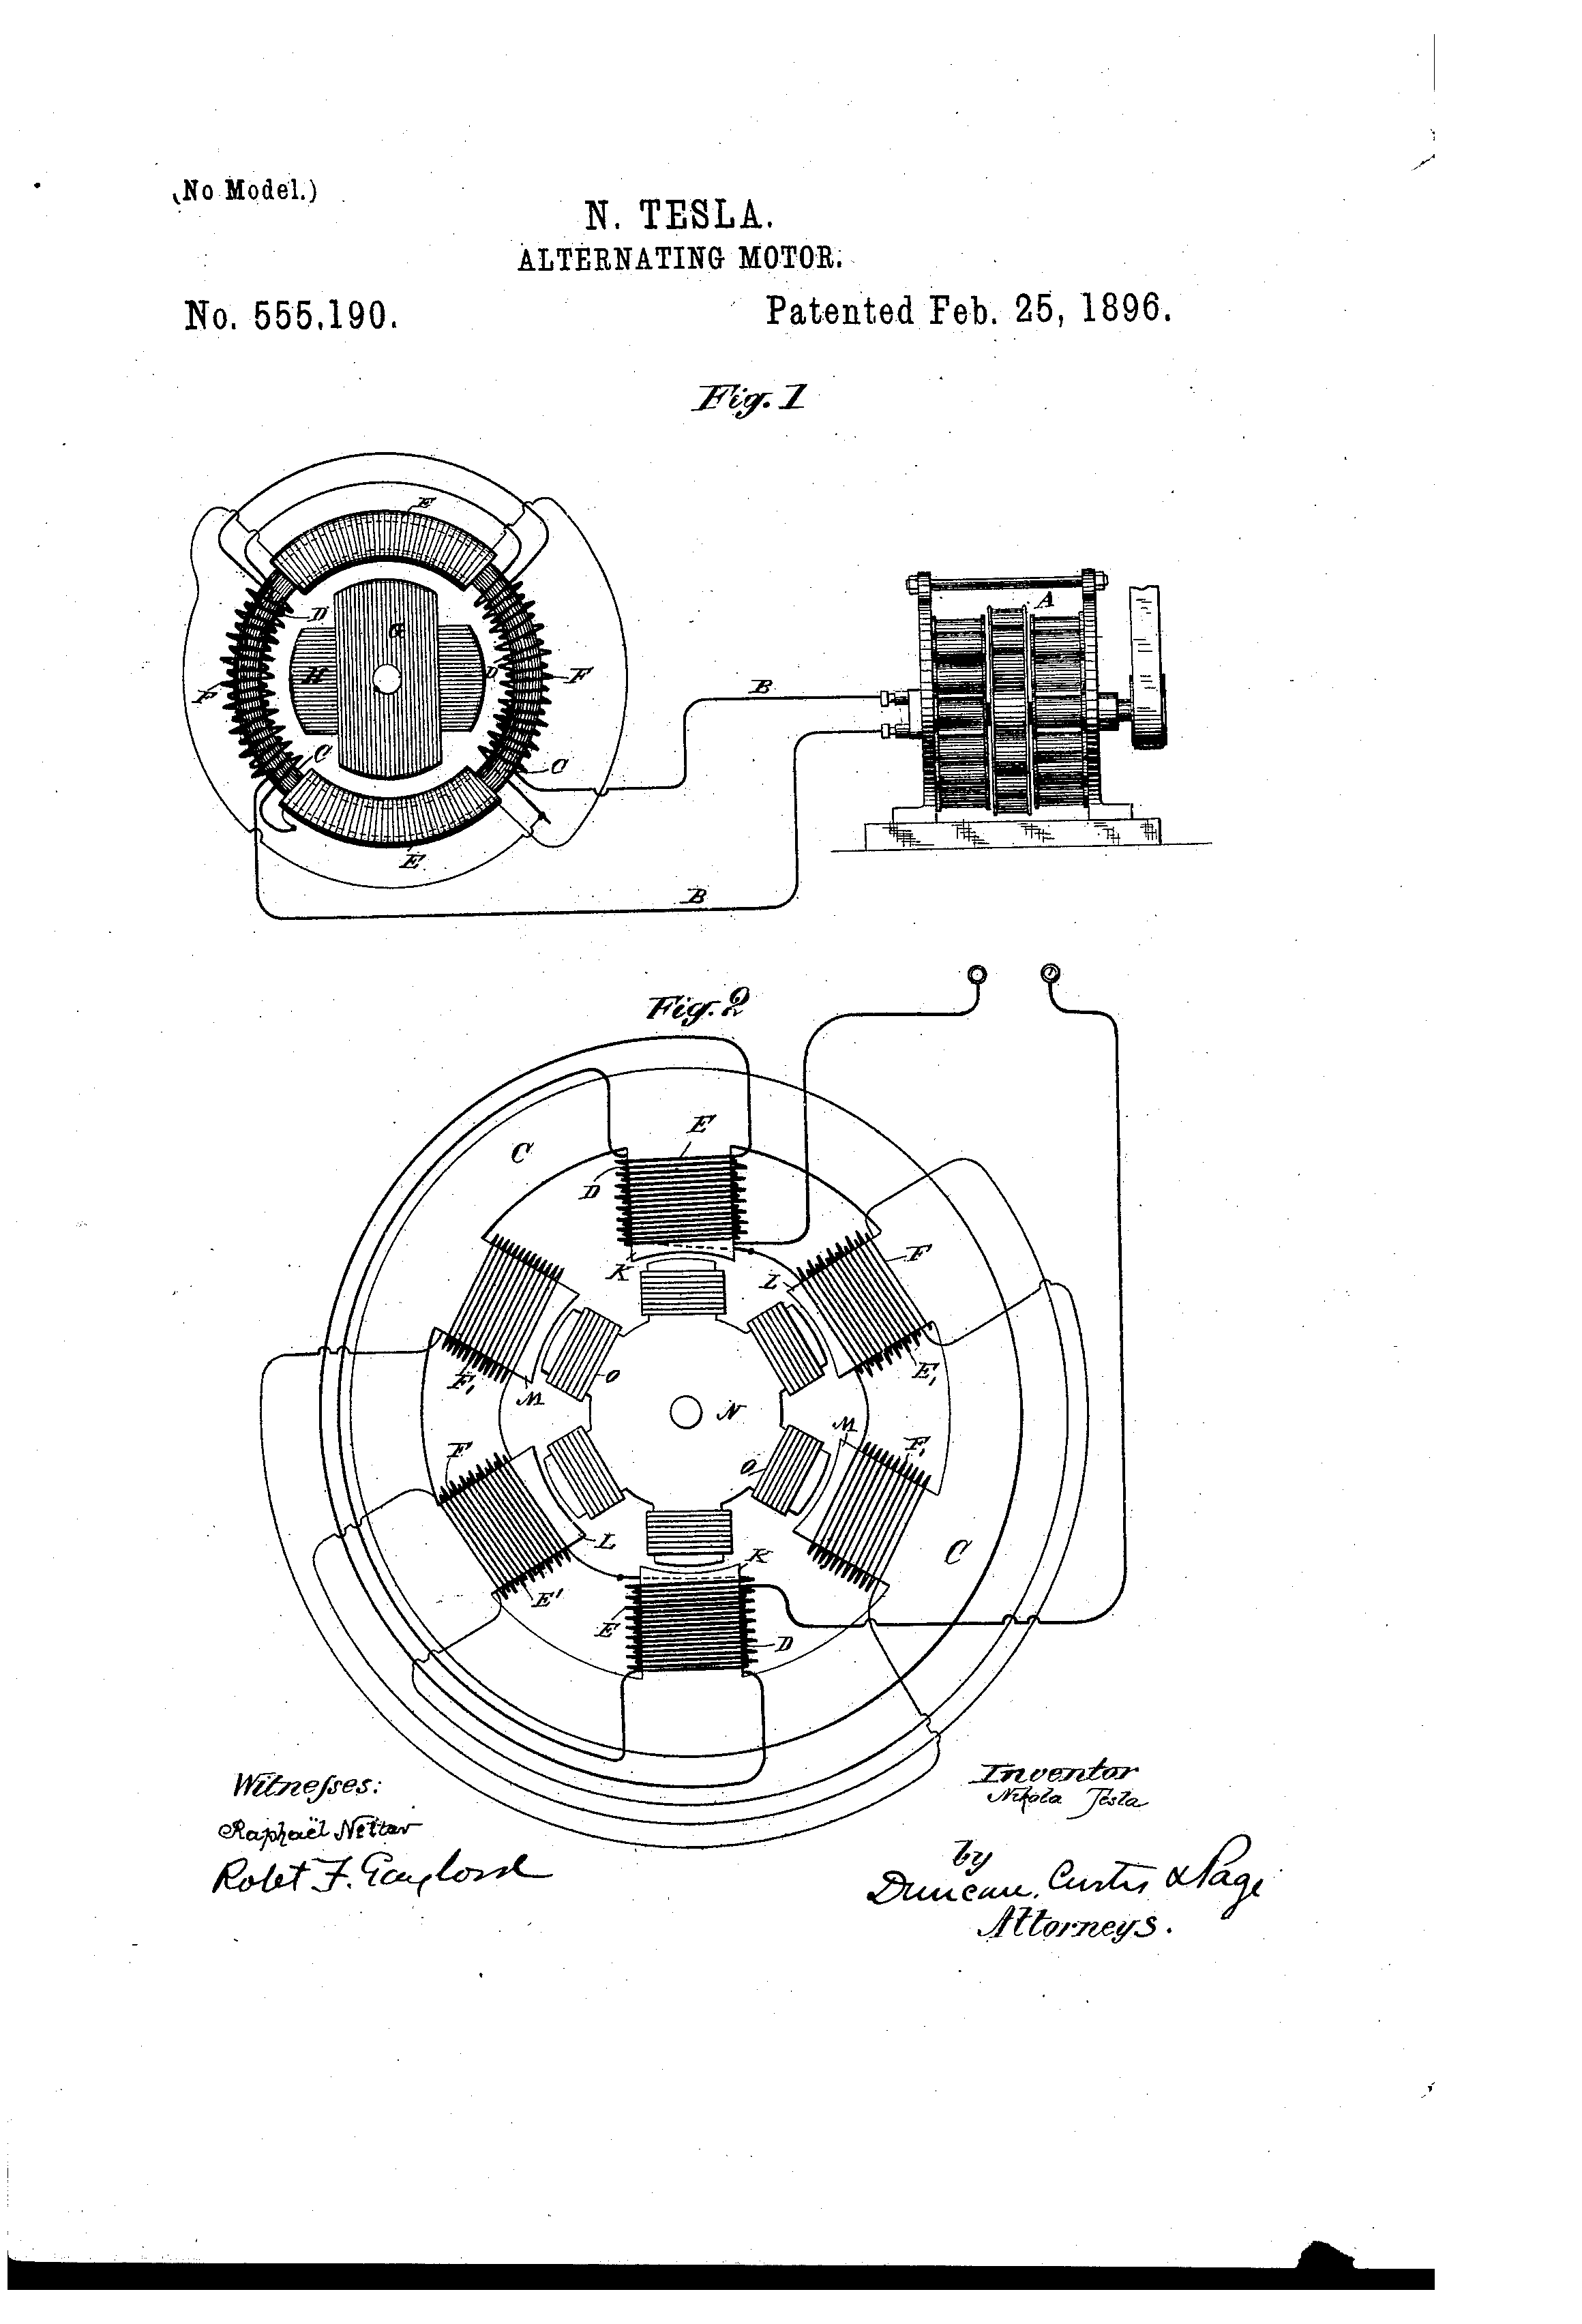 2320x3408 patent us555190 motor patents drawing wiring diagram